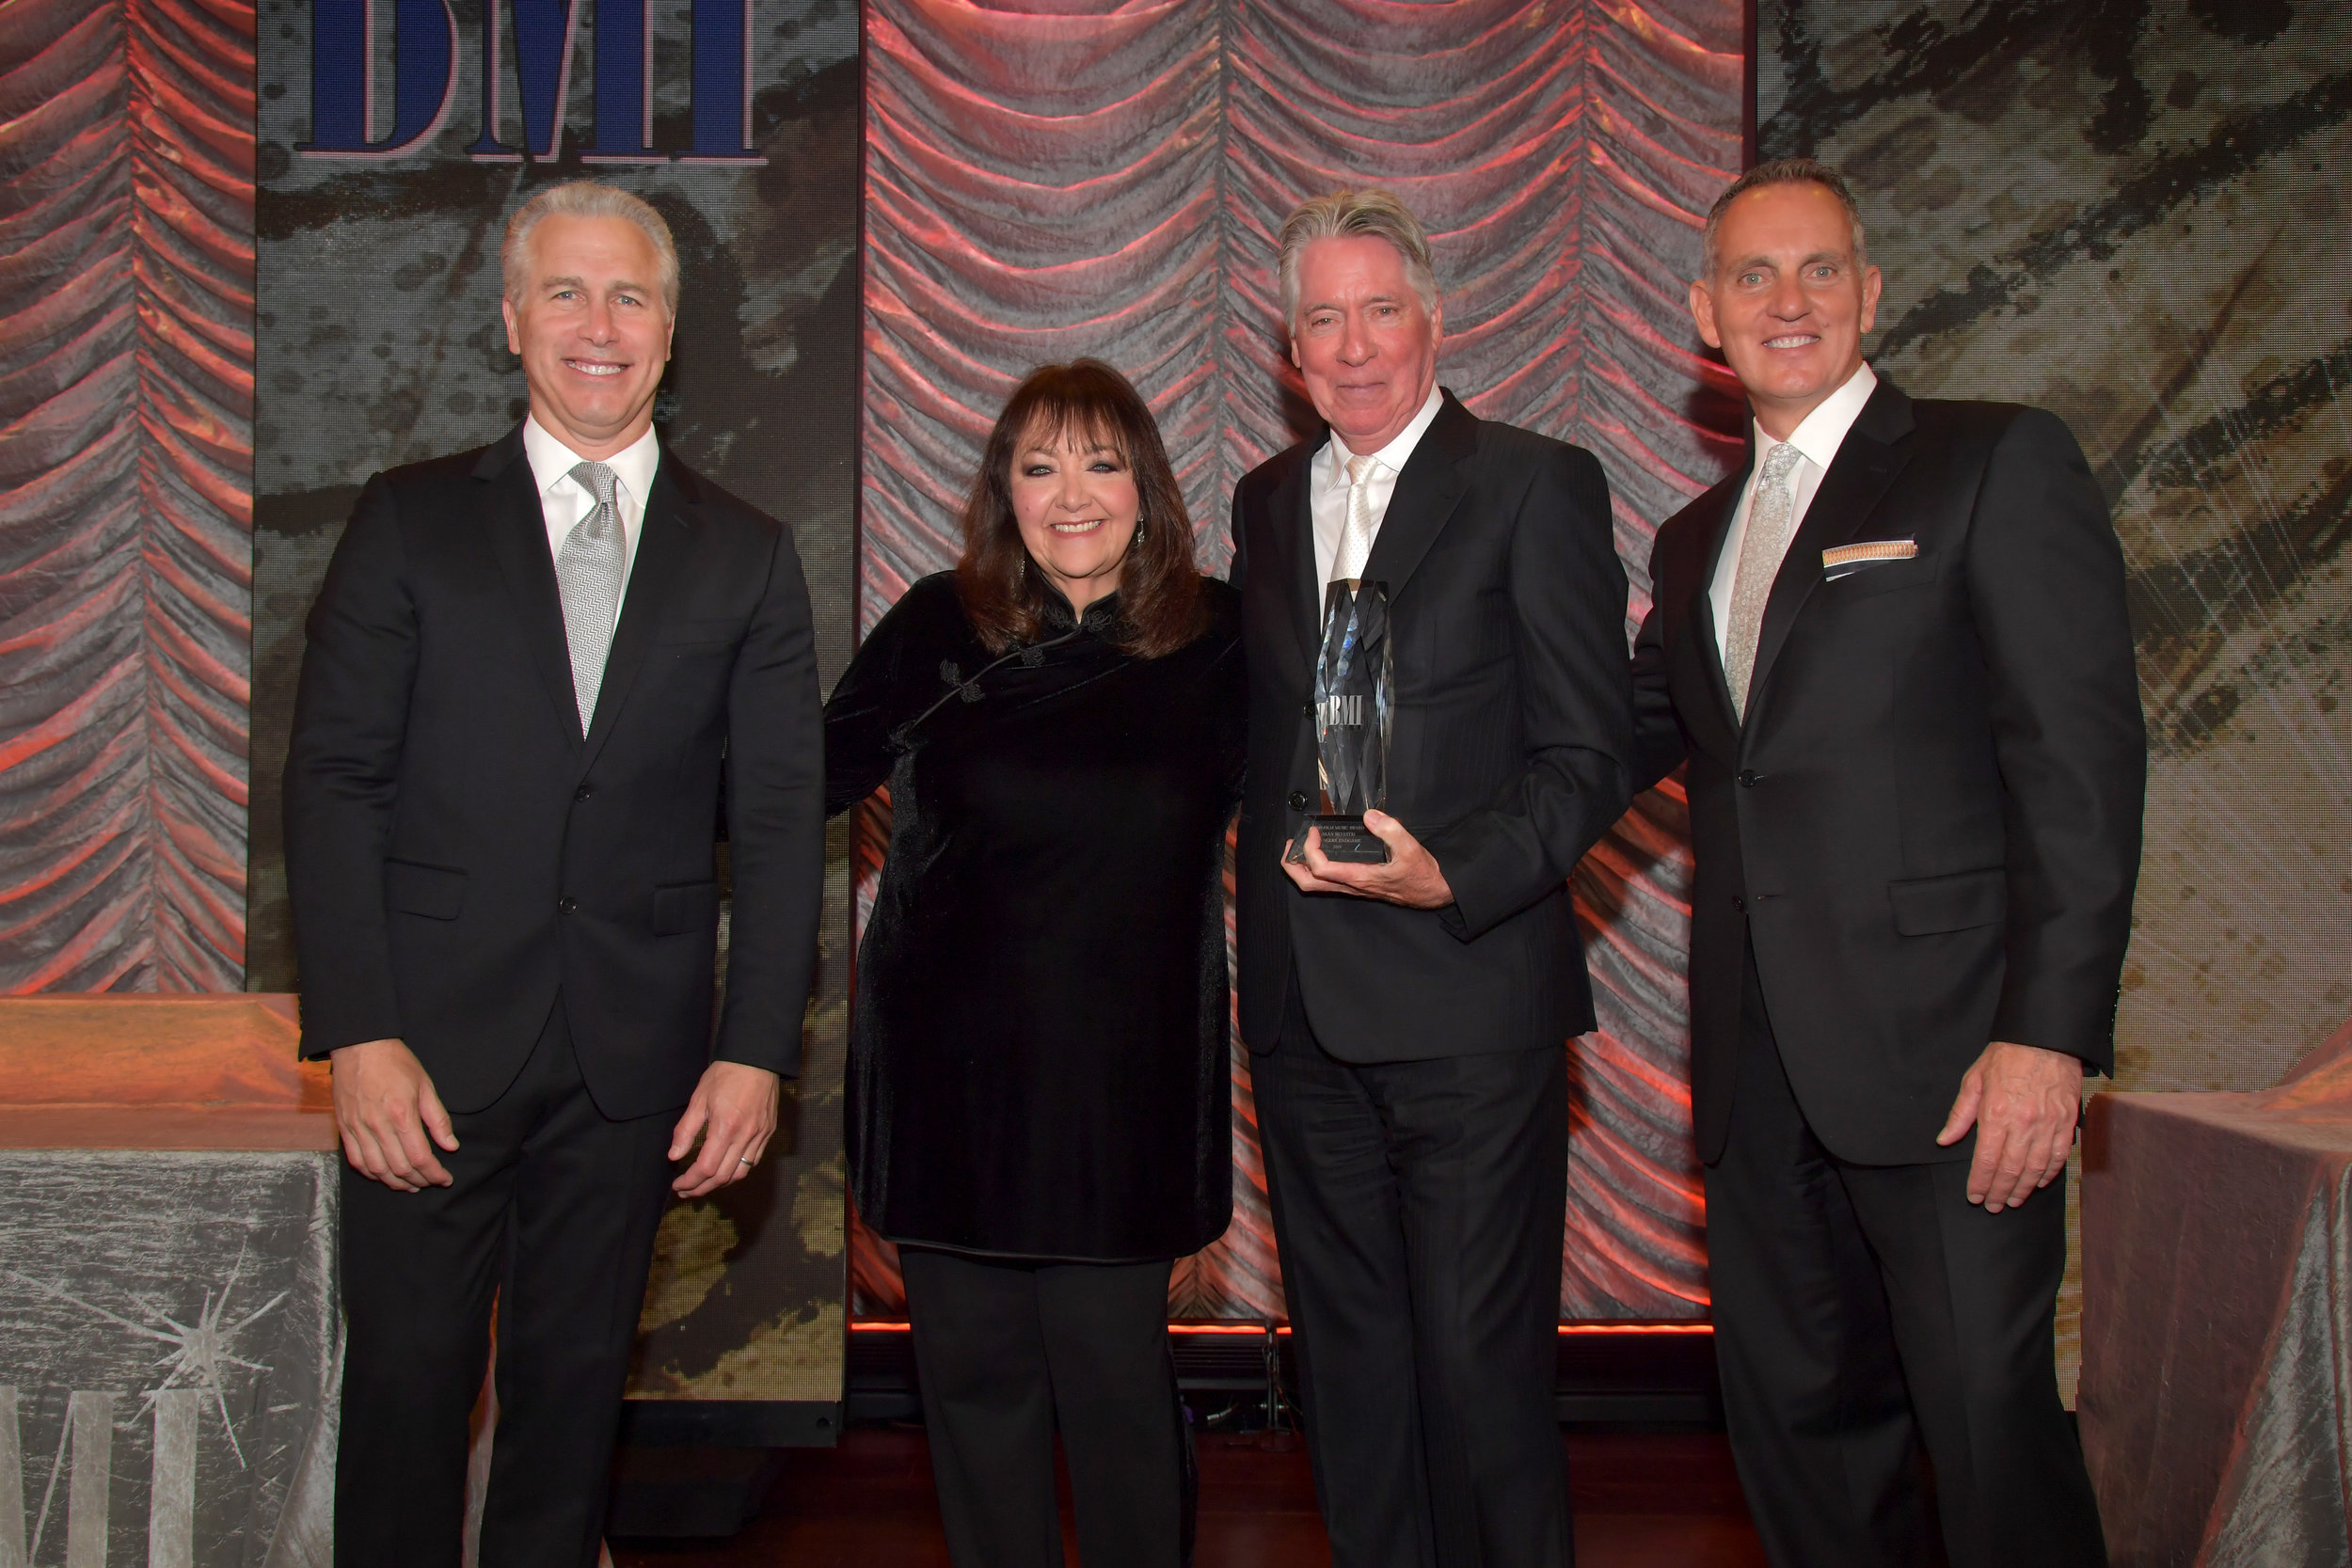 BEVERLY HILLS, CALIFORNIA - MAY 15: BMI Executive Vice President of Creative & Licensing Mike Steinberg, BMI Creative - Film, TV & Visual Media VP Doreen Ringer-Ross, Alan Silvestri and BMI President & Chief Executive Officer Mike O'Neill attend the 35th annual BMI Film, TV & Visual Media Awards on May 15, 2019 in Beverly Hills, California. (Photo by Lester Cohen/Getty Images for BMI)